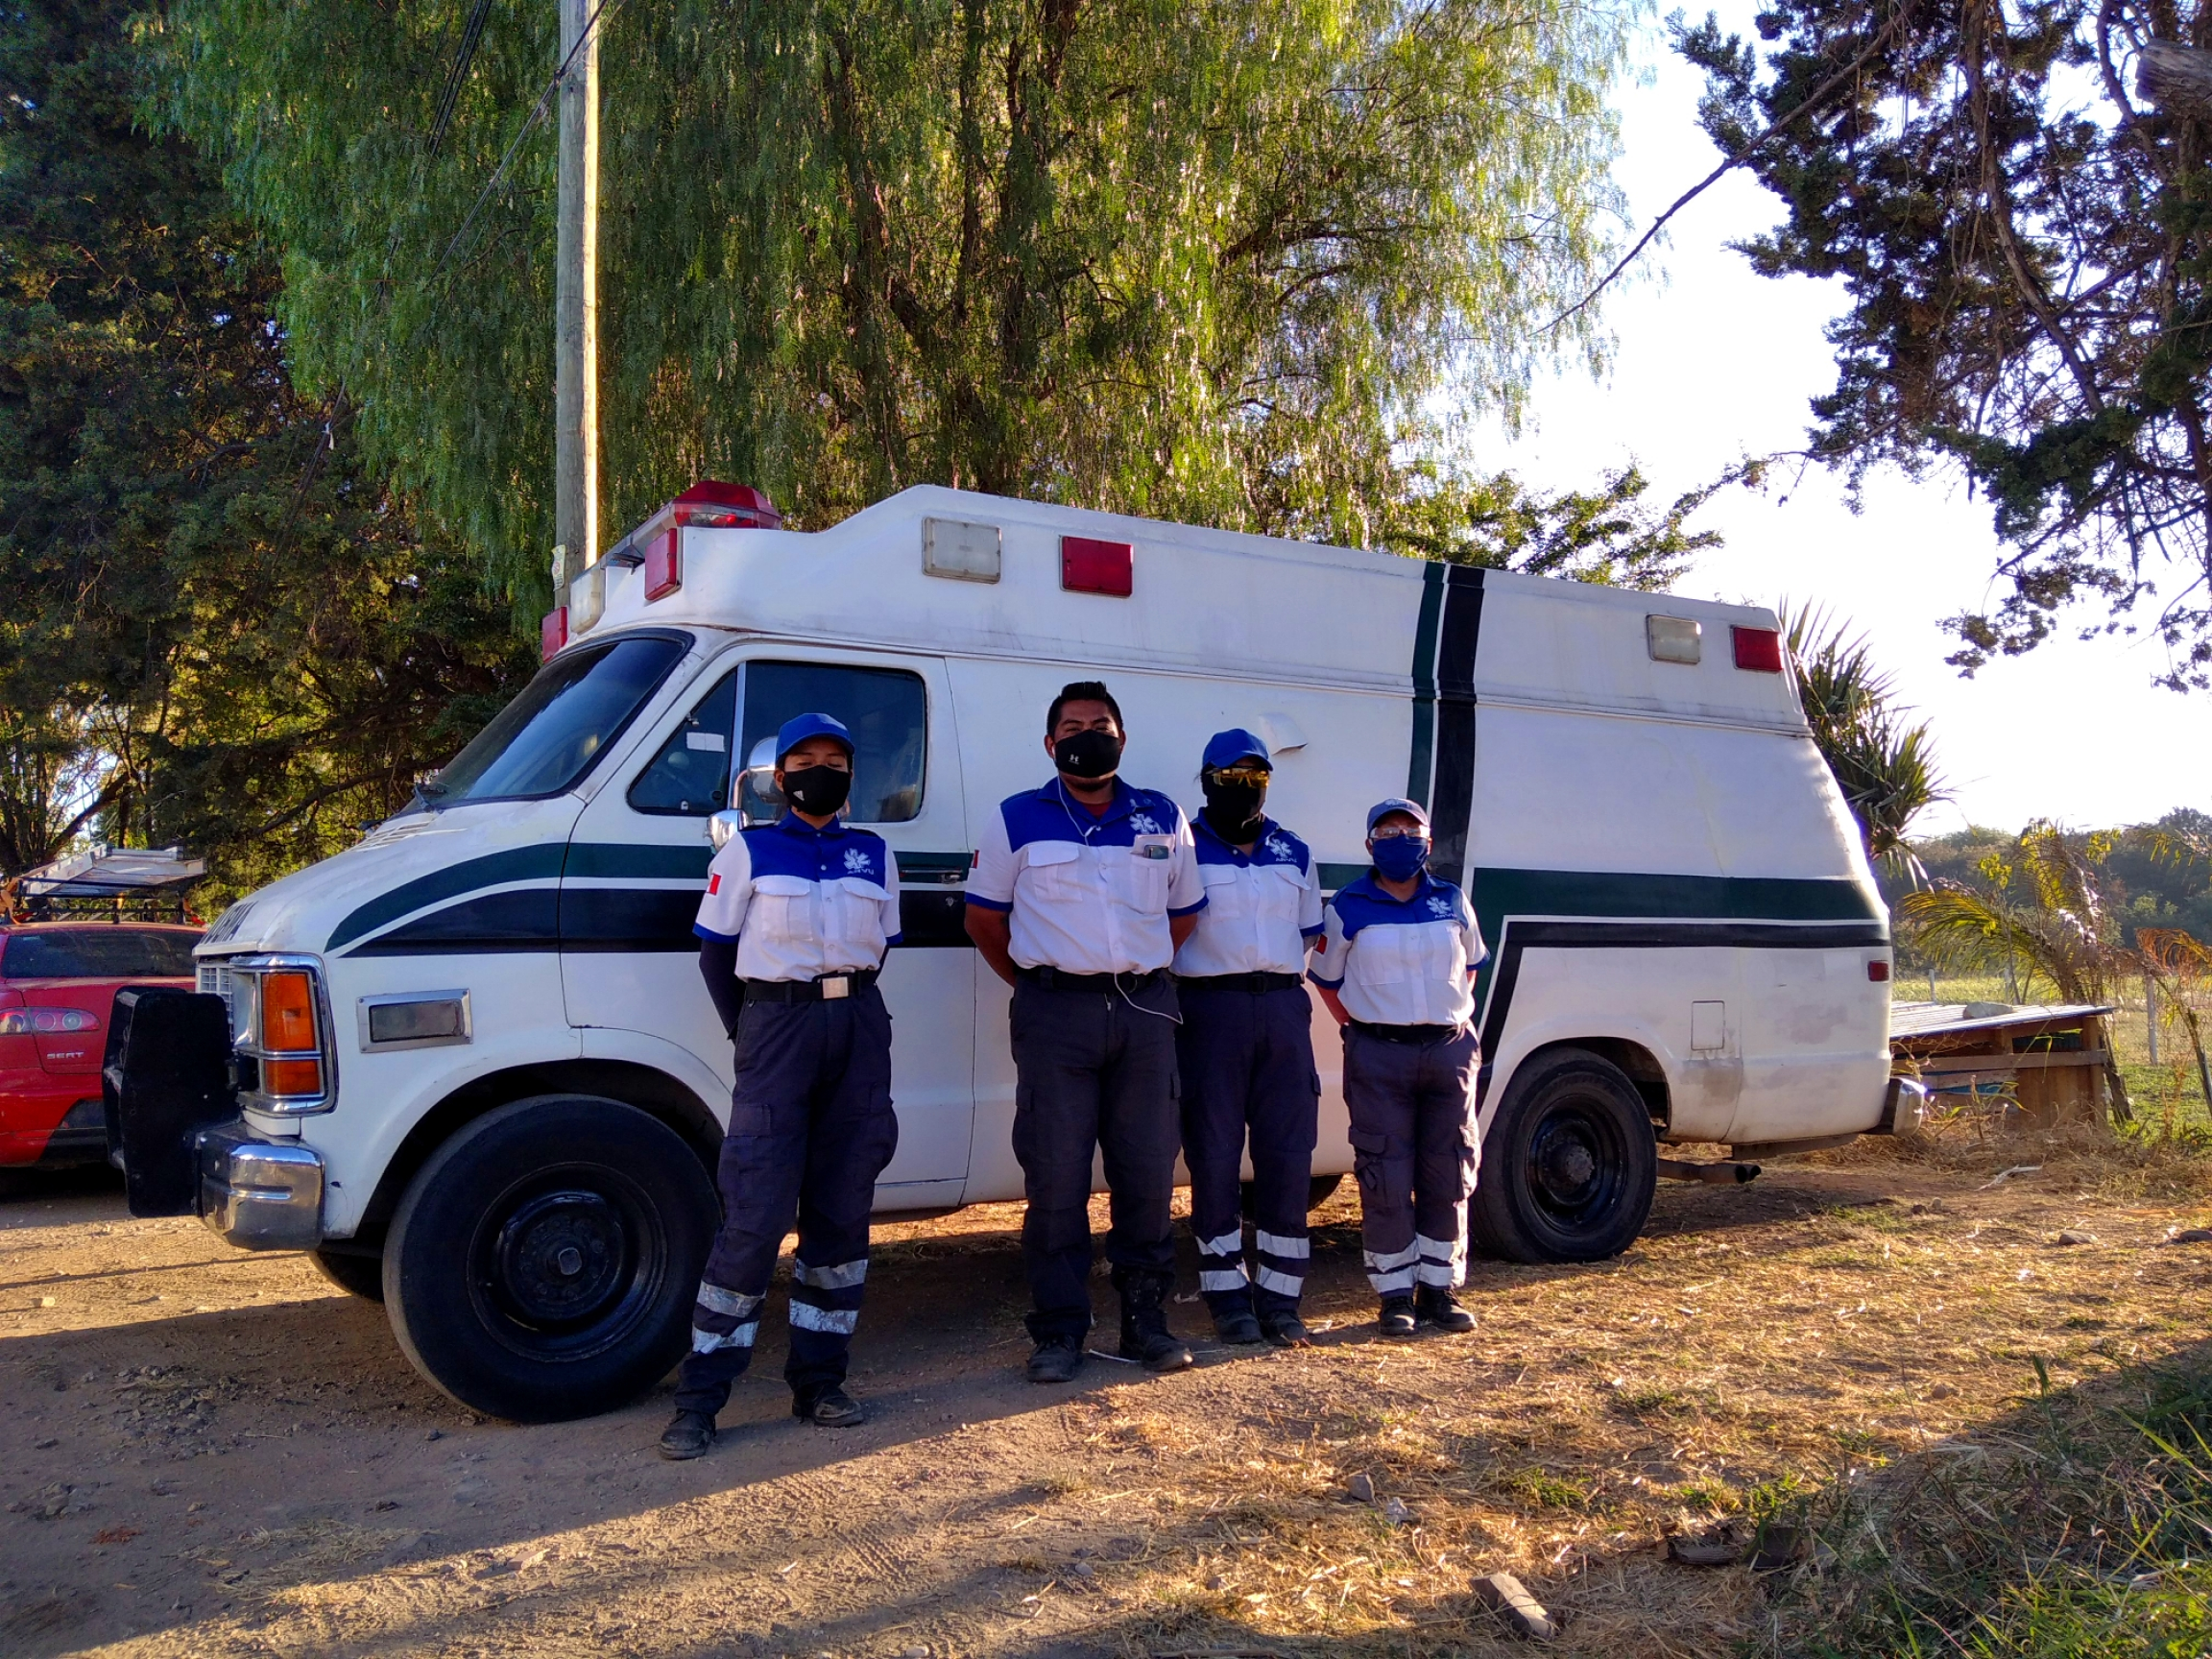 Josué Martínez and other members of the Brigadas ARVU volunteer paramedic crew park their ambulance by the side of the highway and ask for donations at stop lights when they're not responding to accidents or administering first aid.